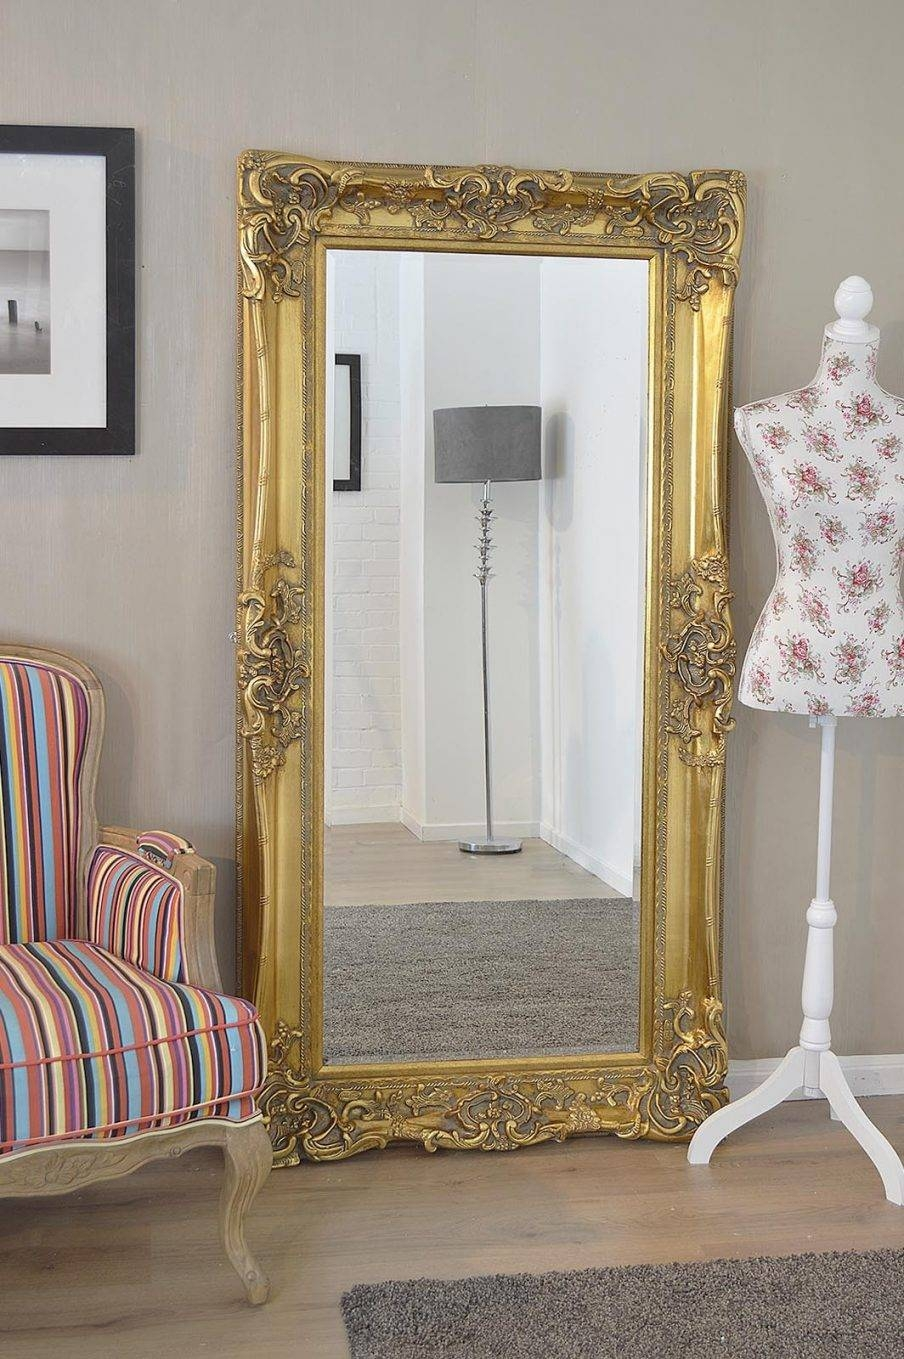 Outstanding White Shabby Chic Wall Mirror Cozy Shabby Chic Mirrors inside Shabby Chic Mirrors With Shelf (Image 10 of 15)